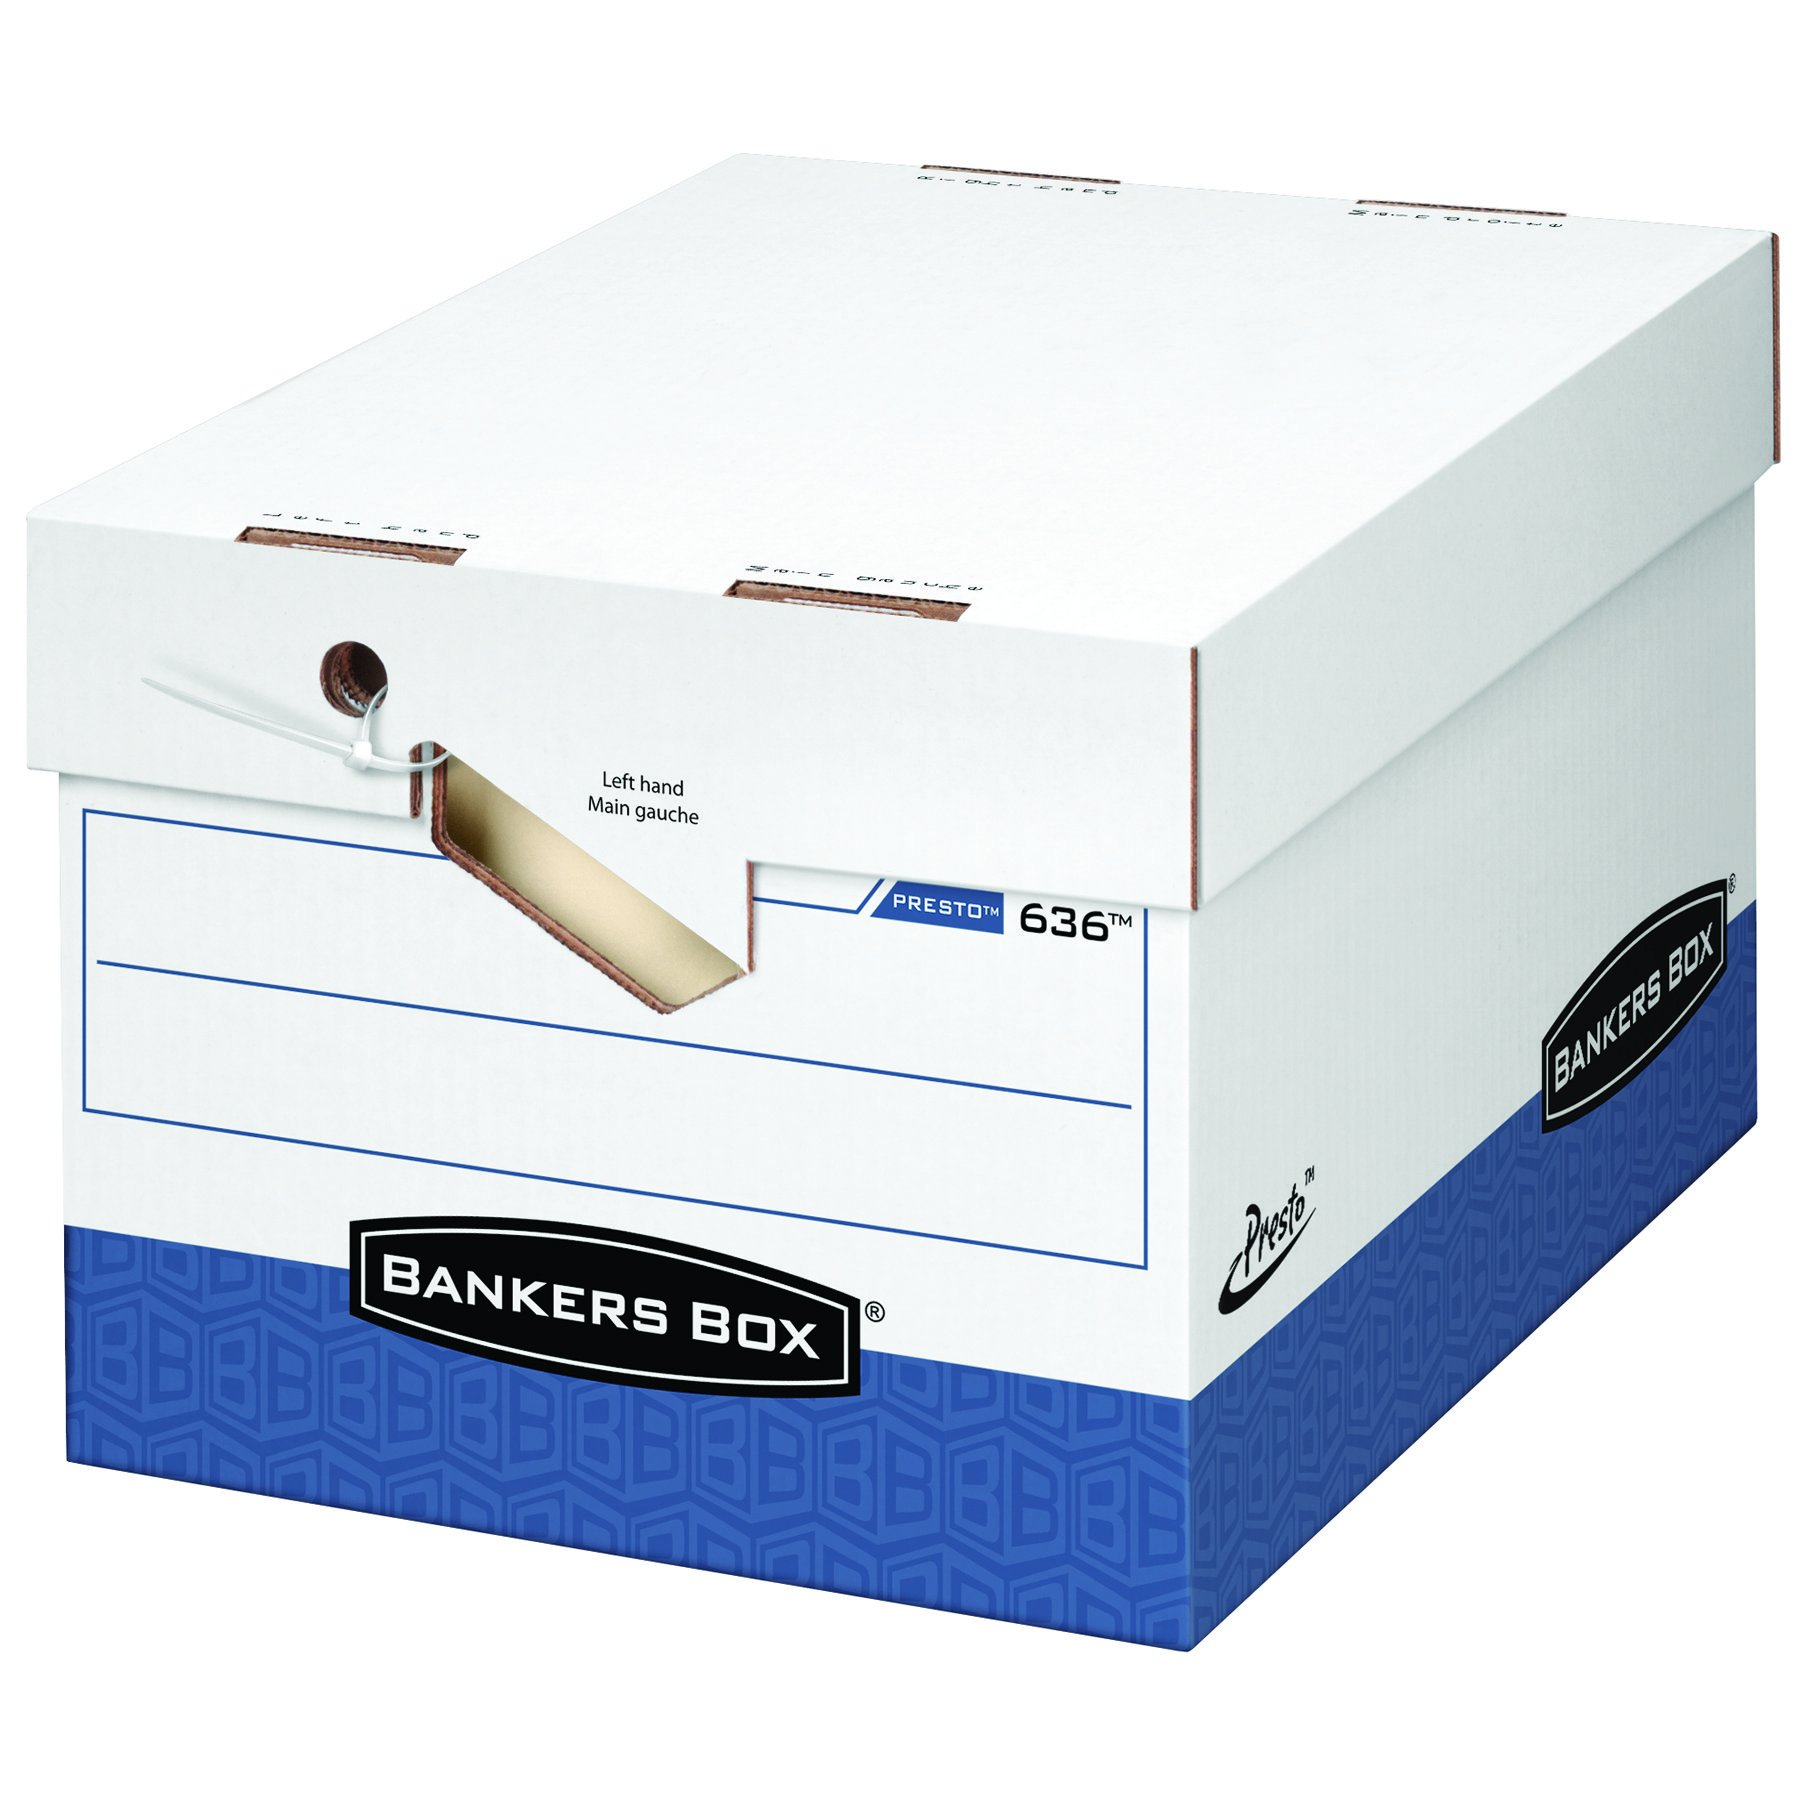 Bankers Box Presto Heavy-Duty Storage Boxes with Ergonomic Design, Letter/Legal, White/Blue, 12 Pack (0063601)